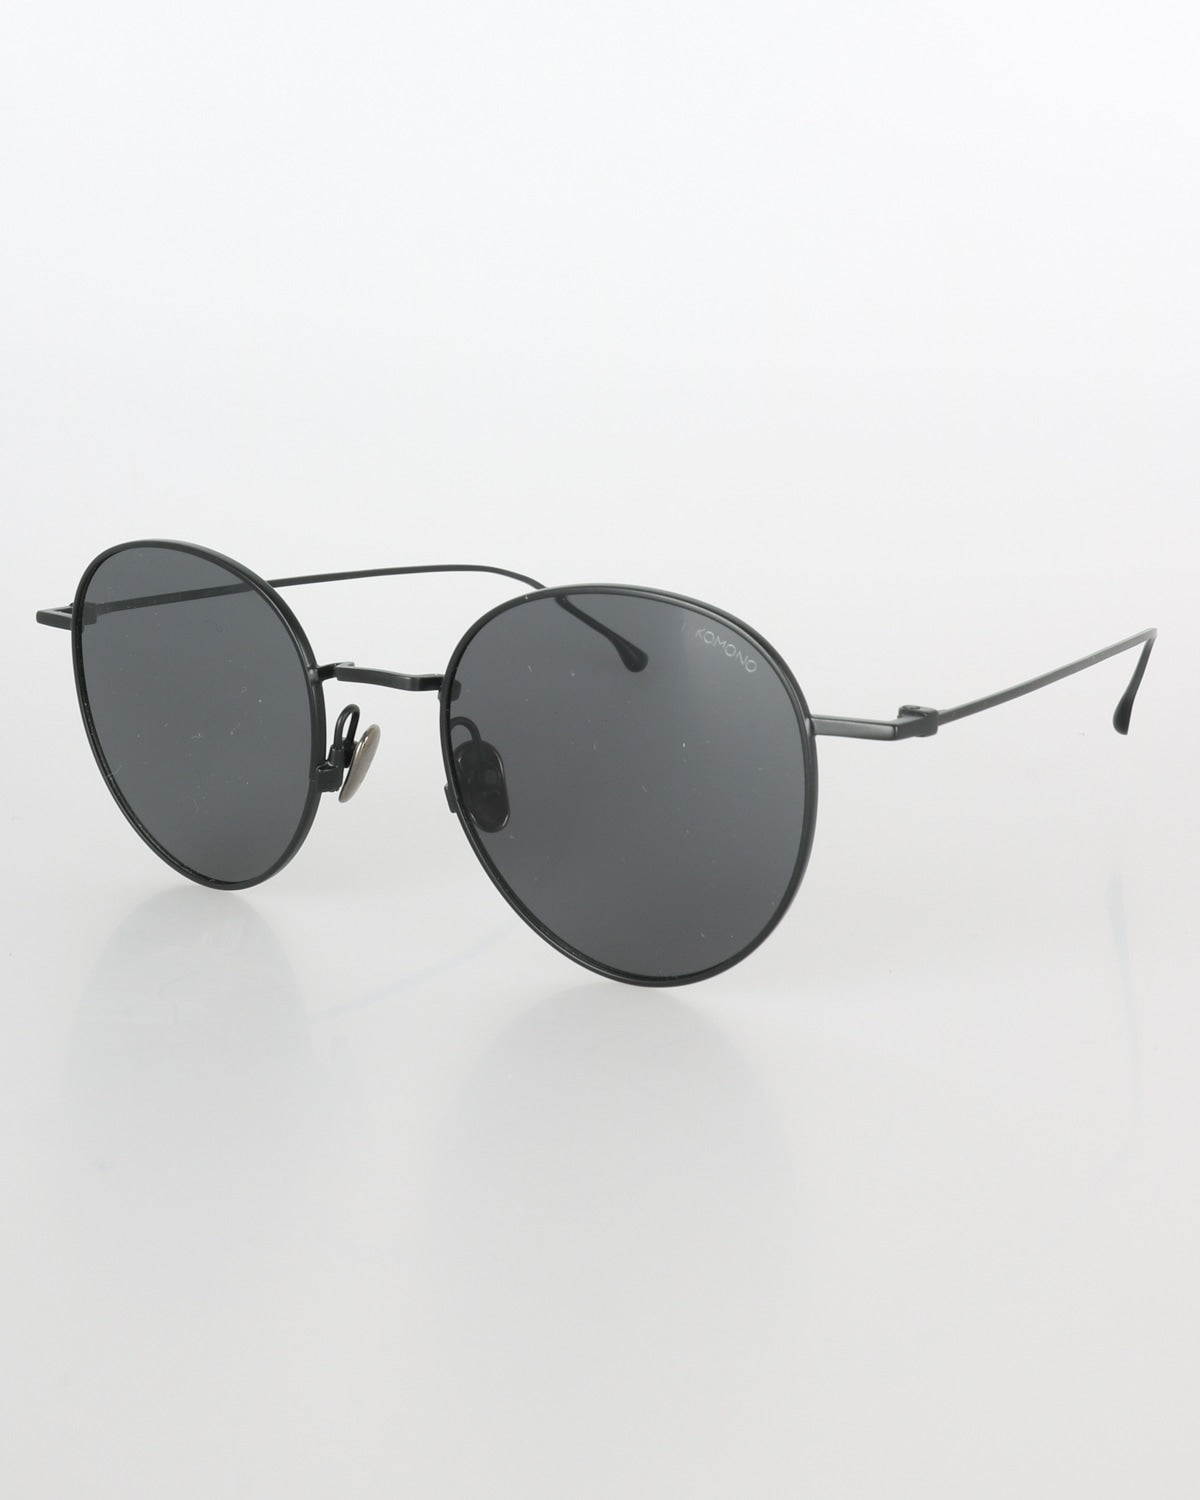 komono_conrad sunglasses_black_2_3